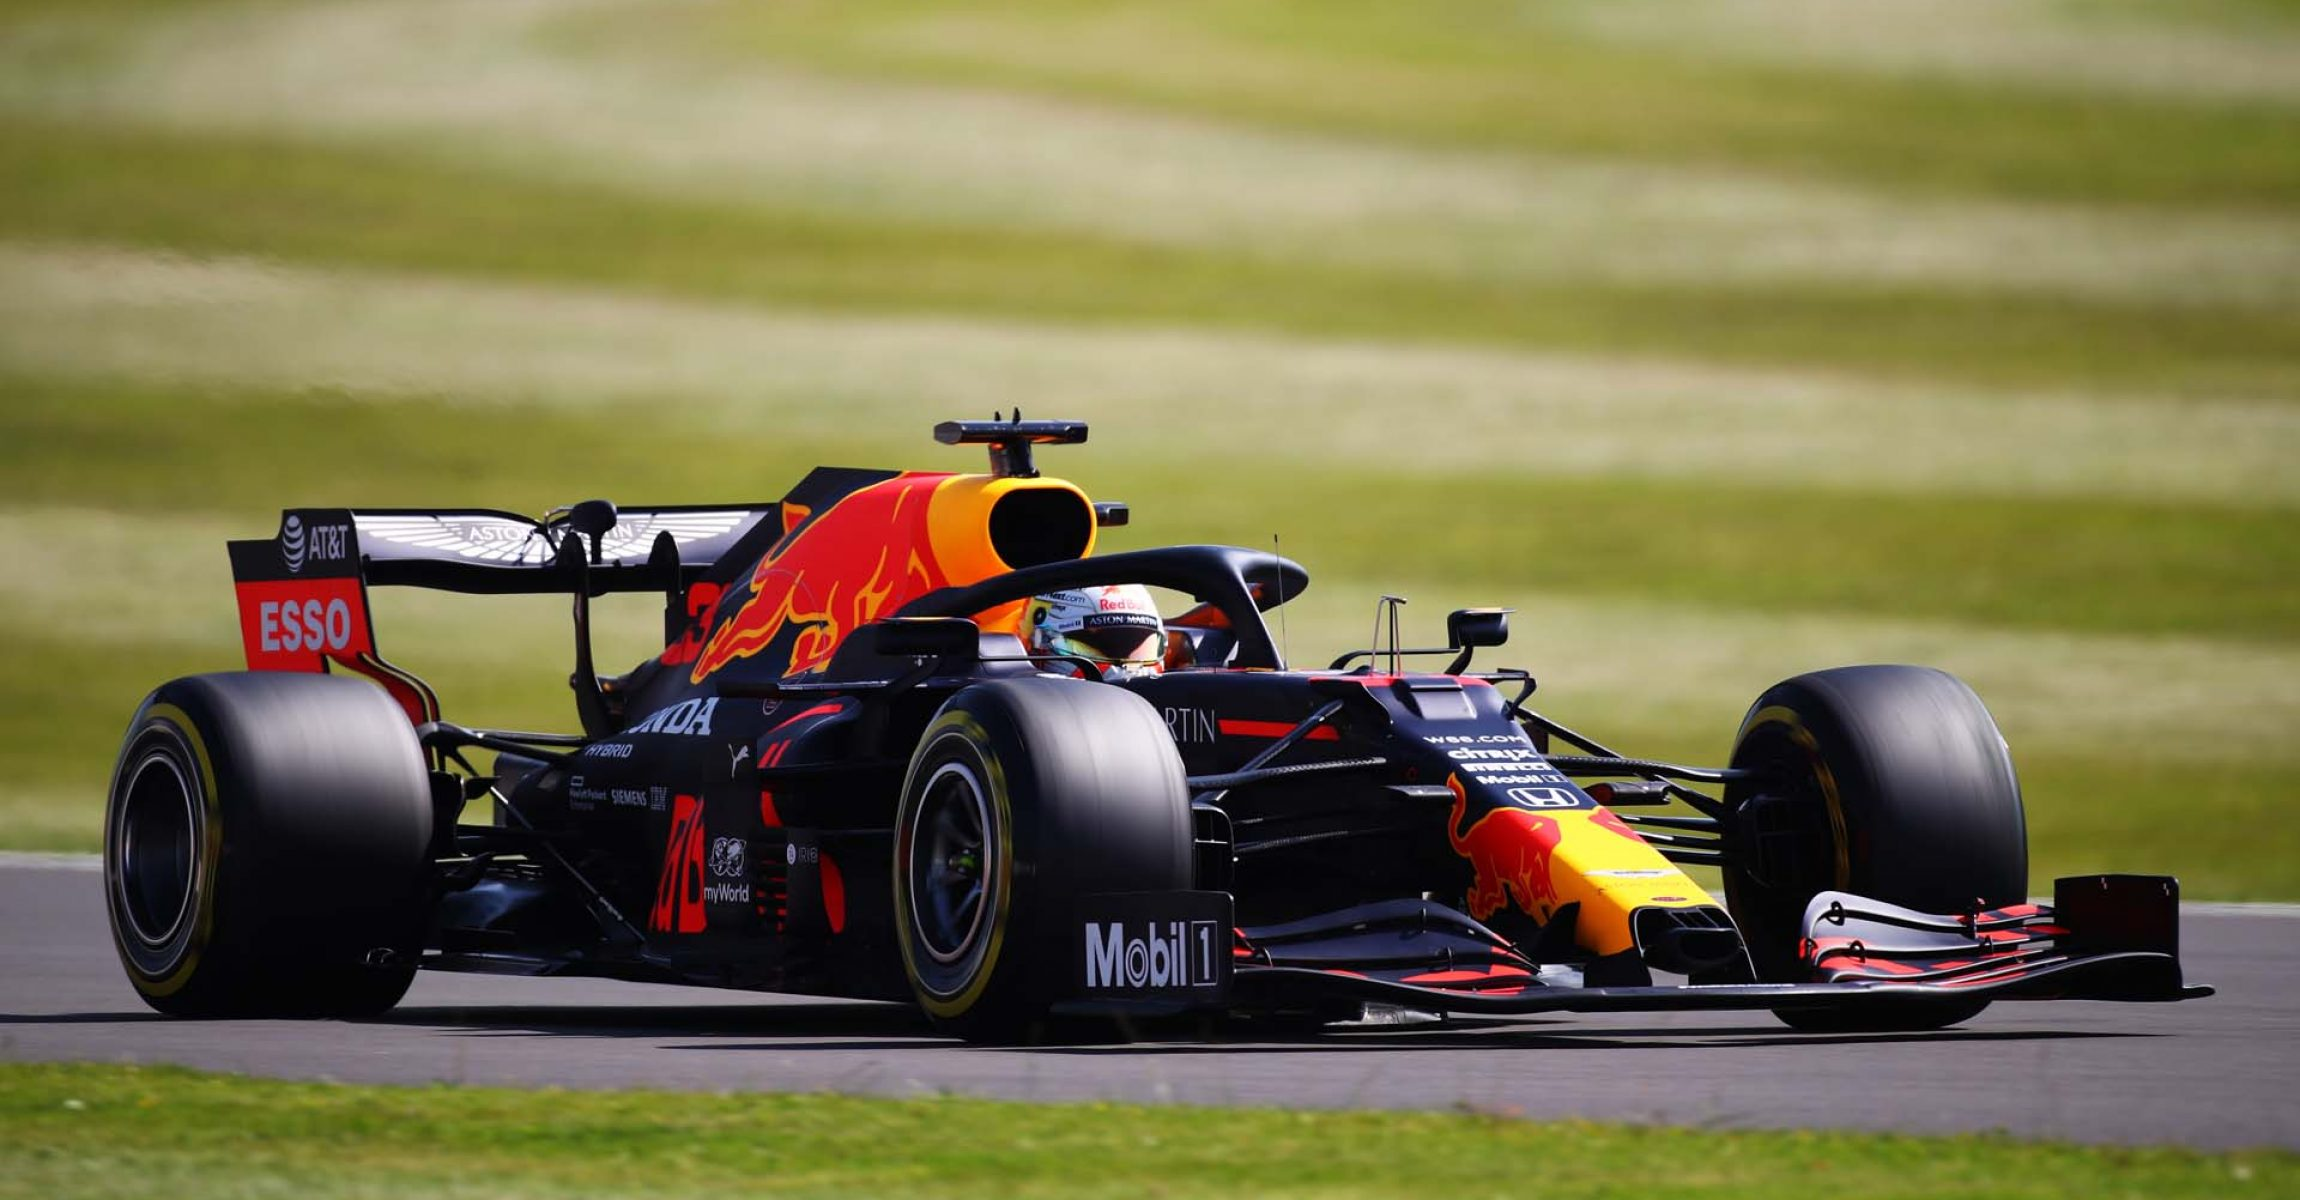 NORTHAMPTON, ENGLAND - JULY 31: Max Verstappen of the Netherlands driving the (33) Aston Martin Red Bull Racing RB16 on track during practice for the F1 Grand Prix of Great Britain at Silverstone on July 31, 2020 in Northampton, England. (Photo by Bryn Lennon/Getty Images)